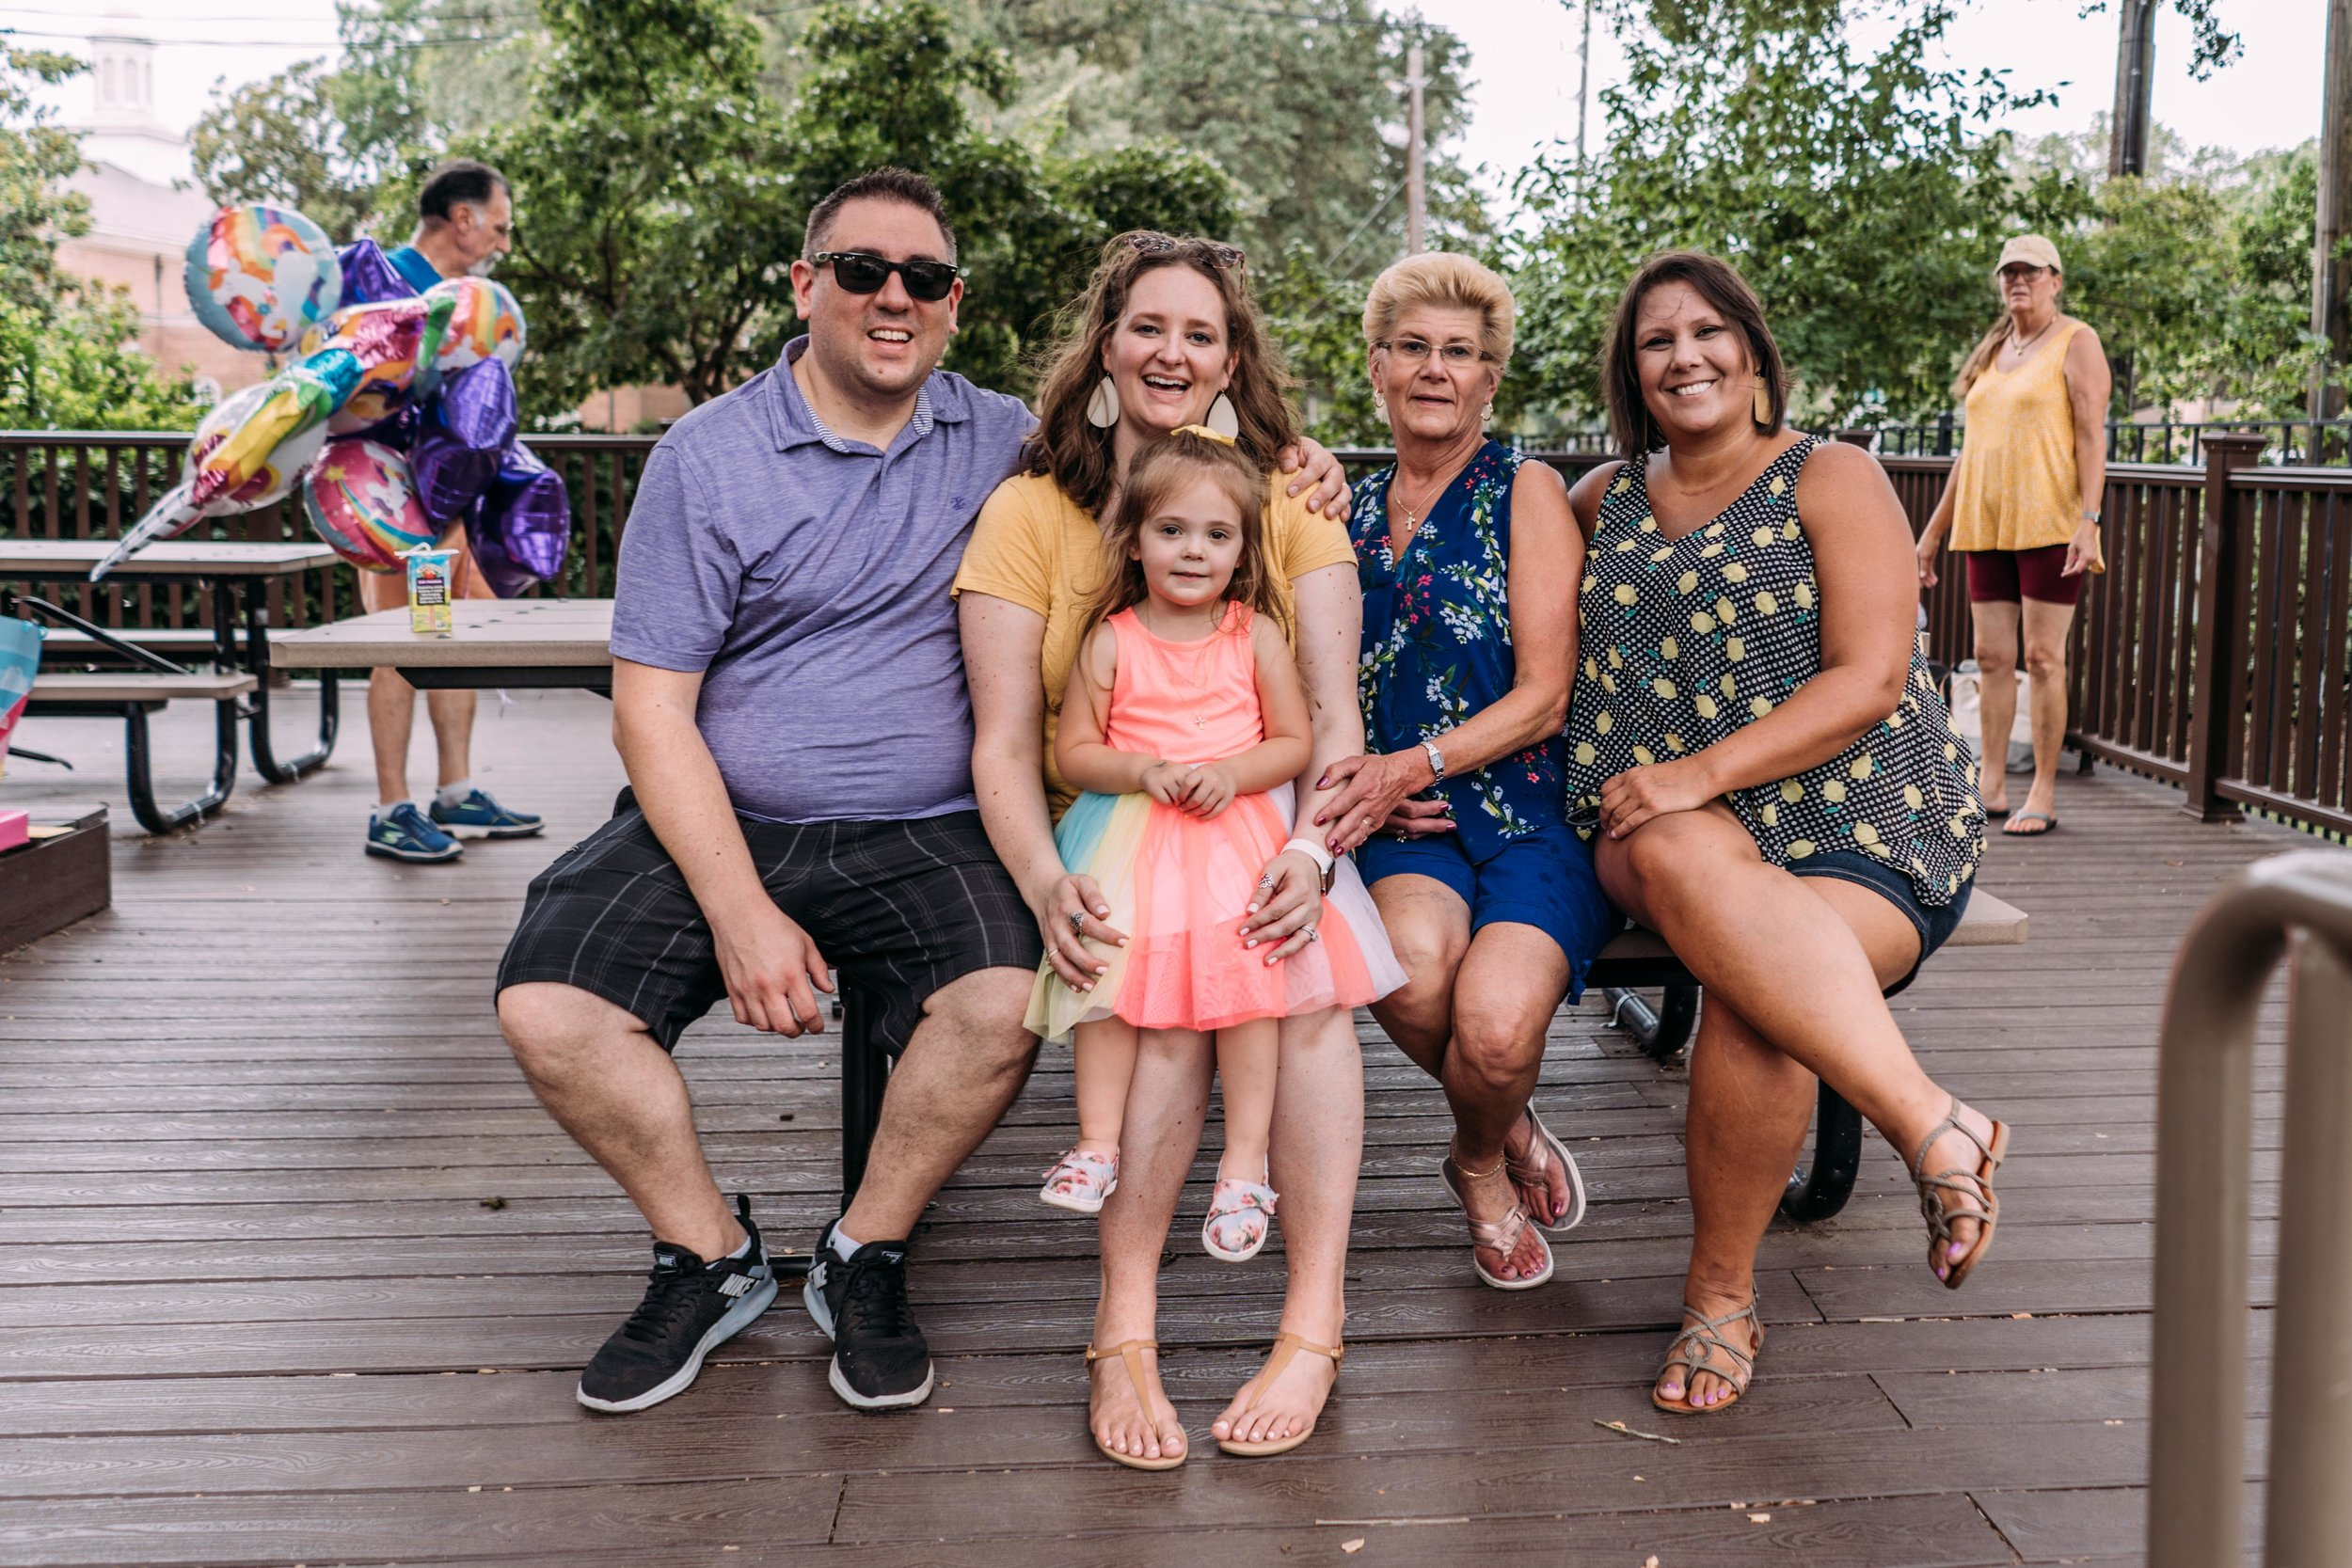 birthday party at the park-63.jpg